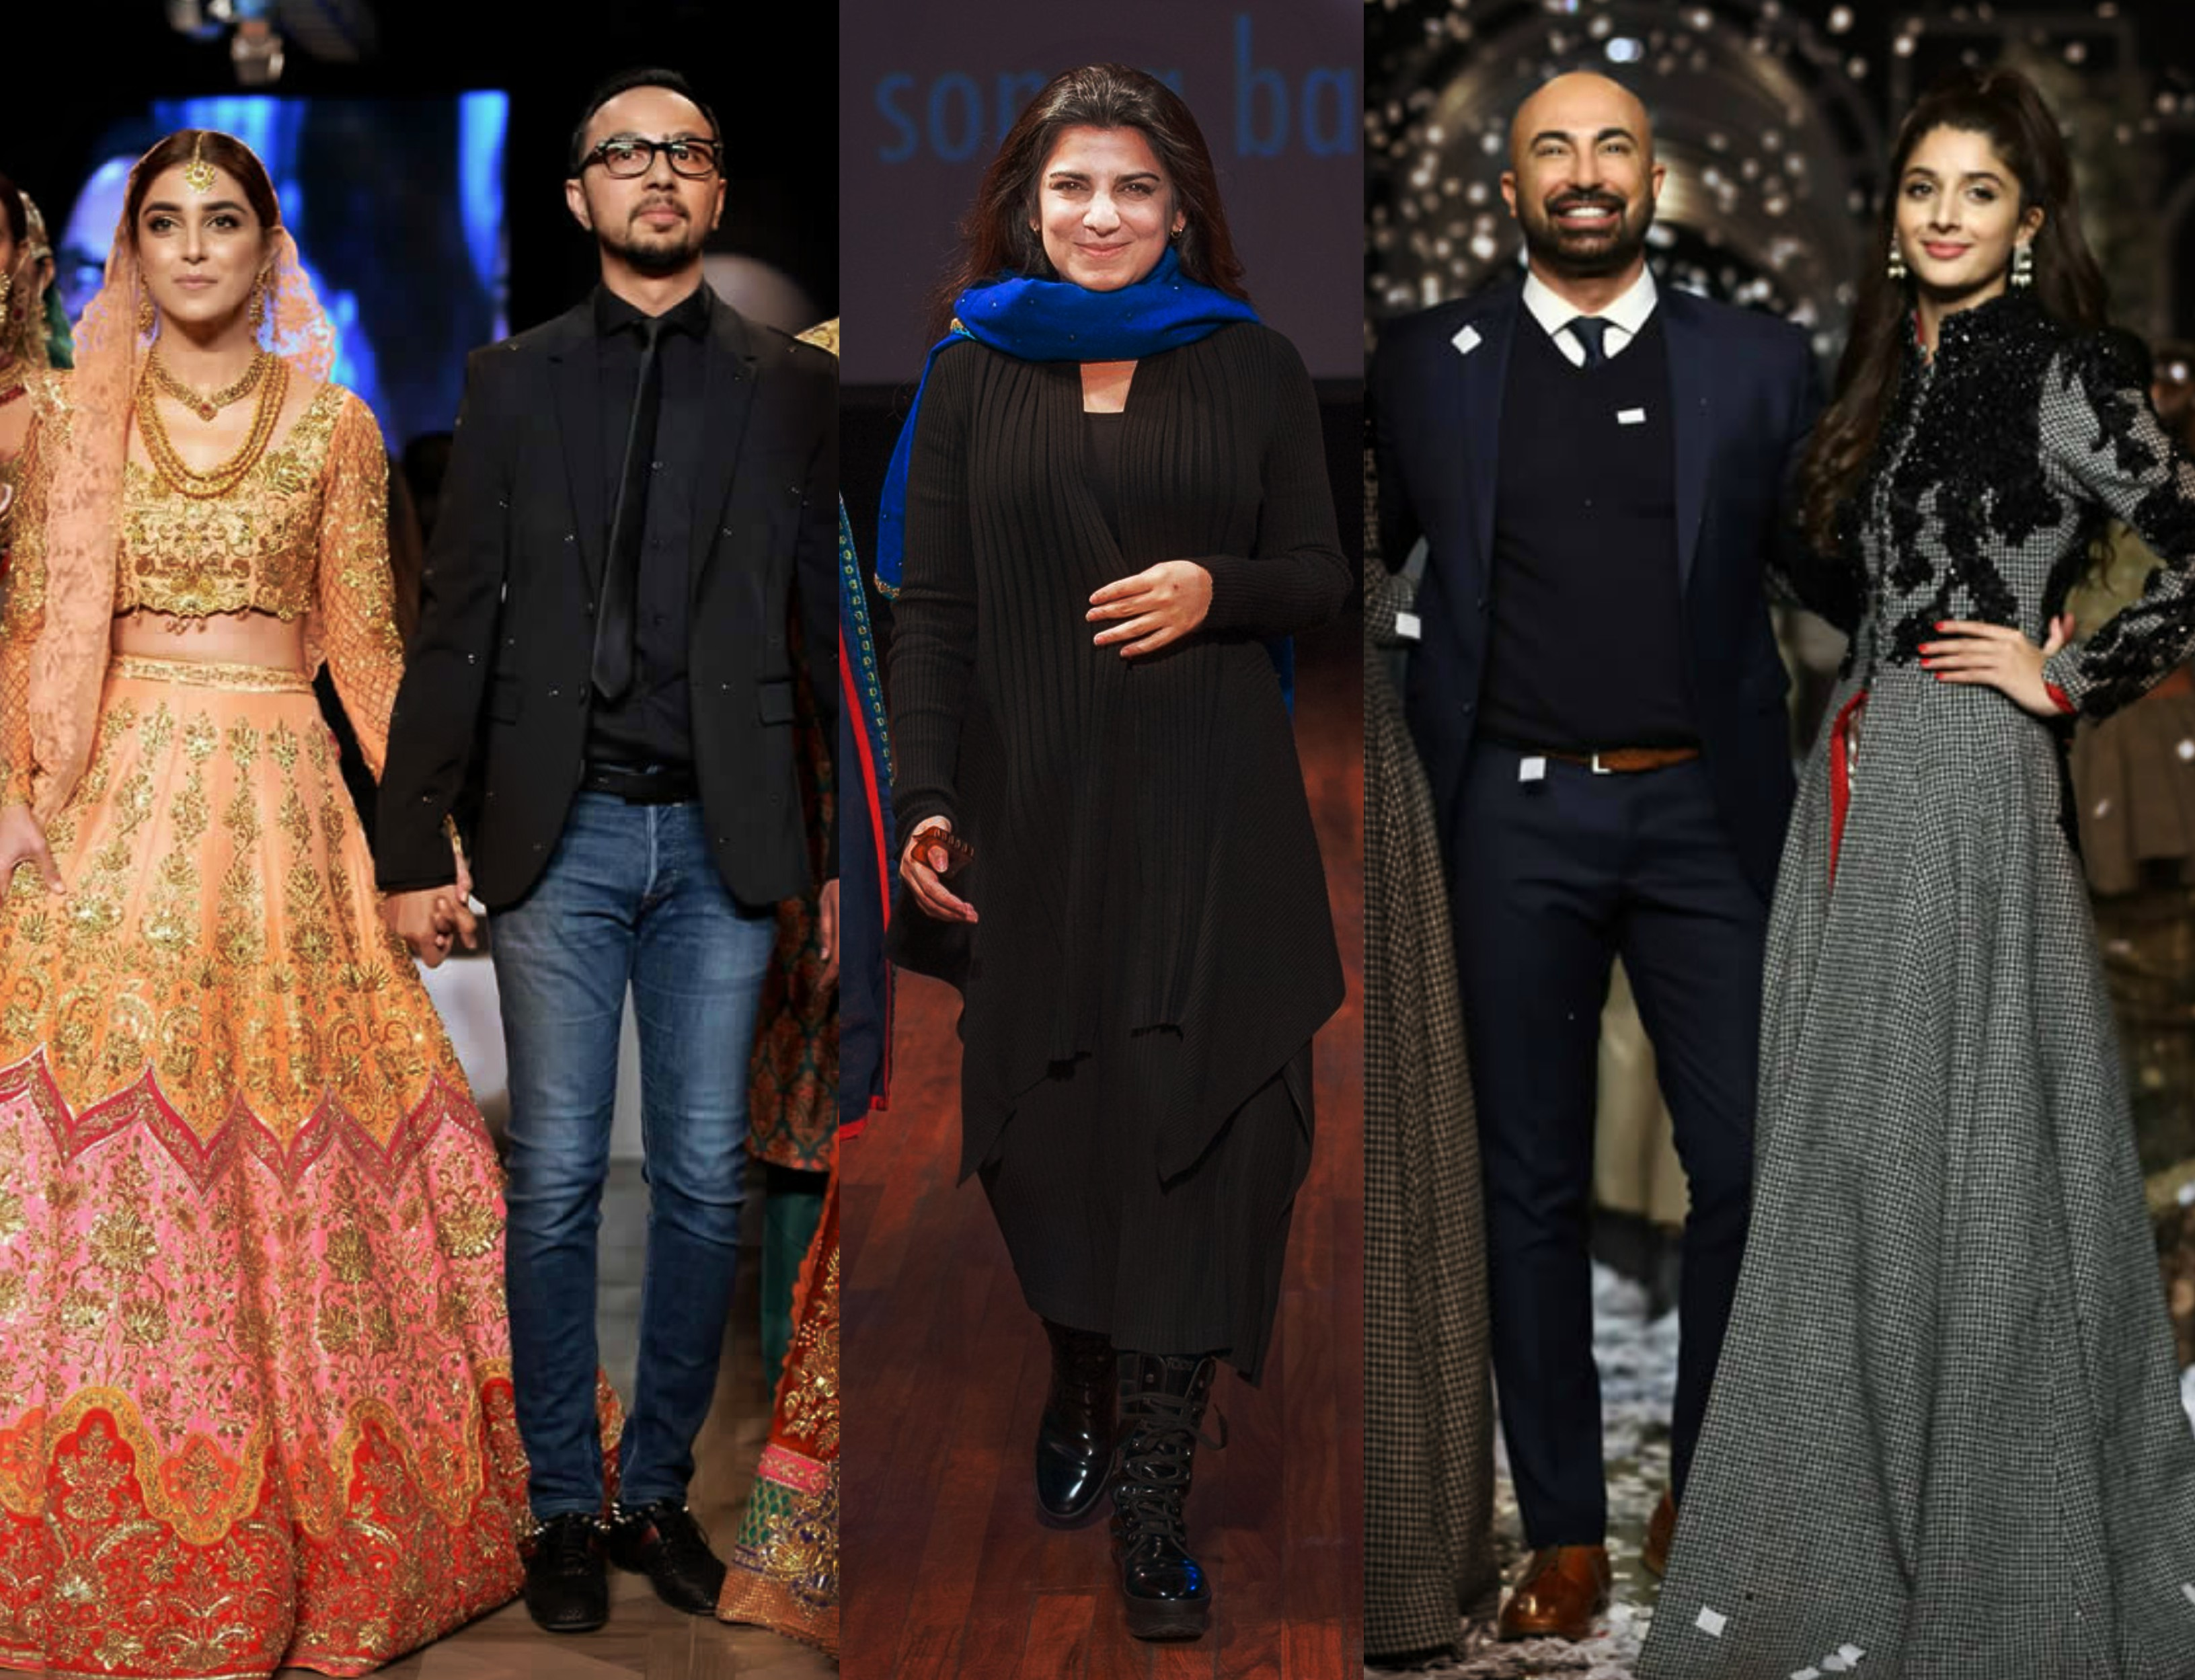 Solo Fashion Showcases In 2020 And What They Will Offer The Express Tribune